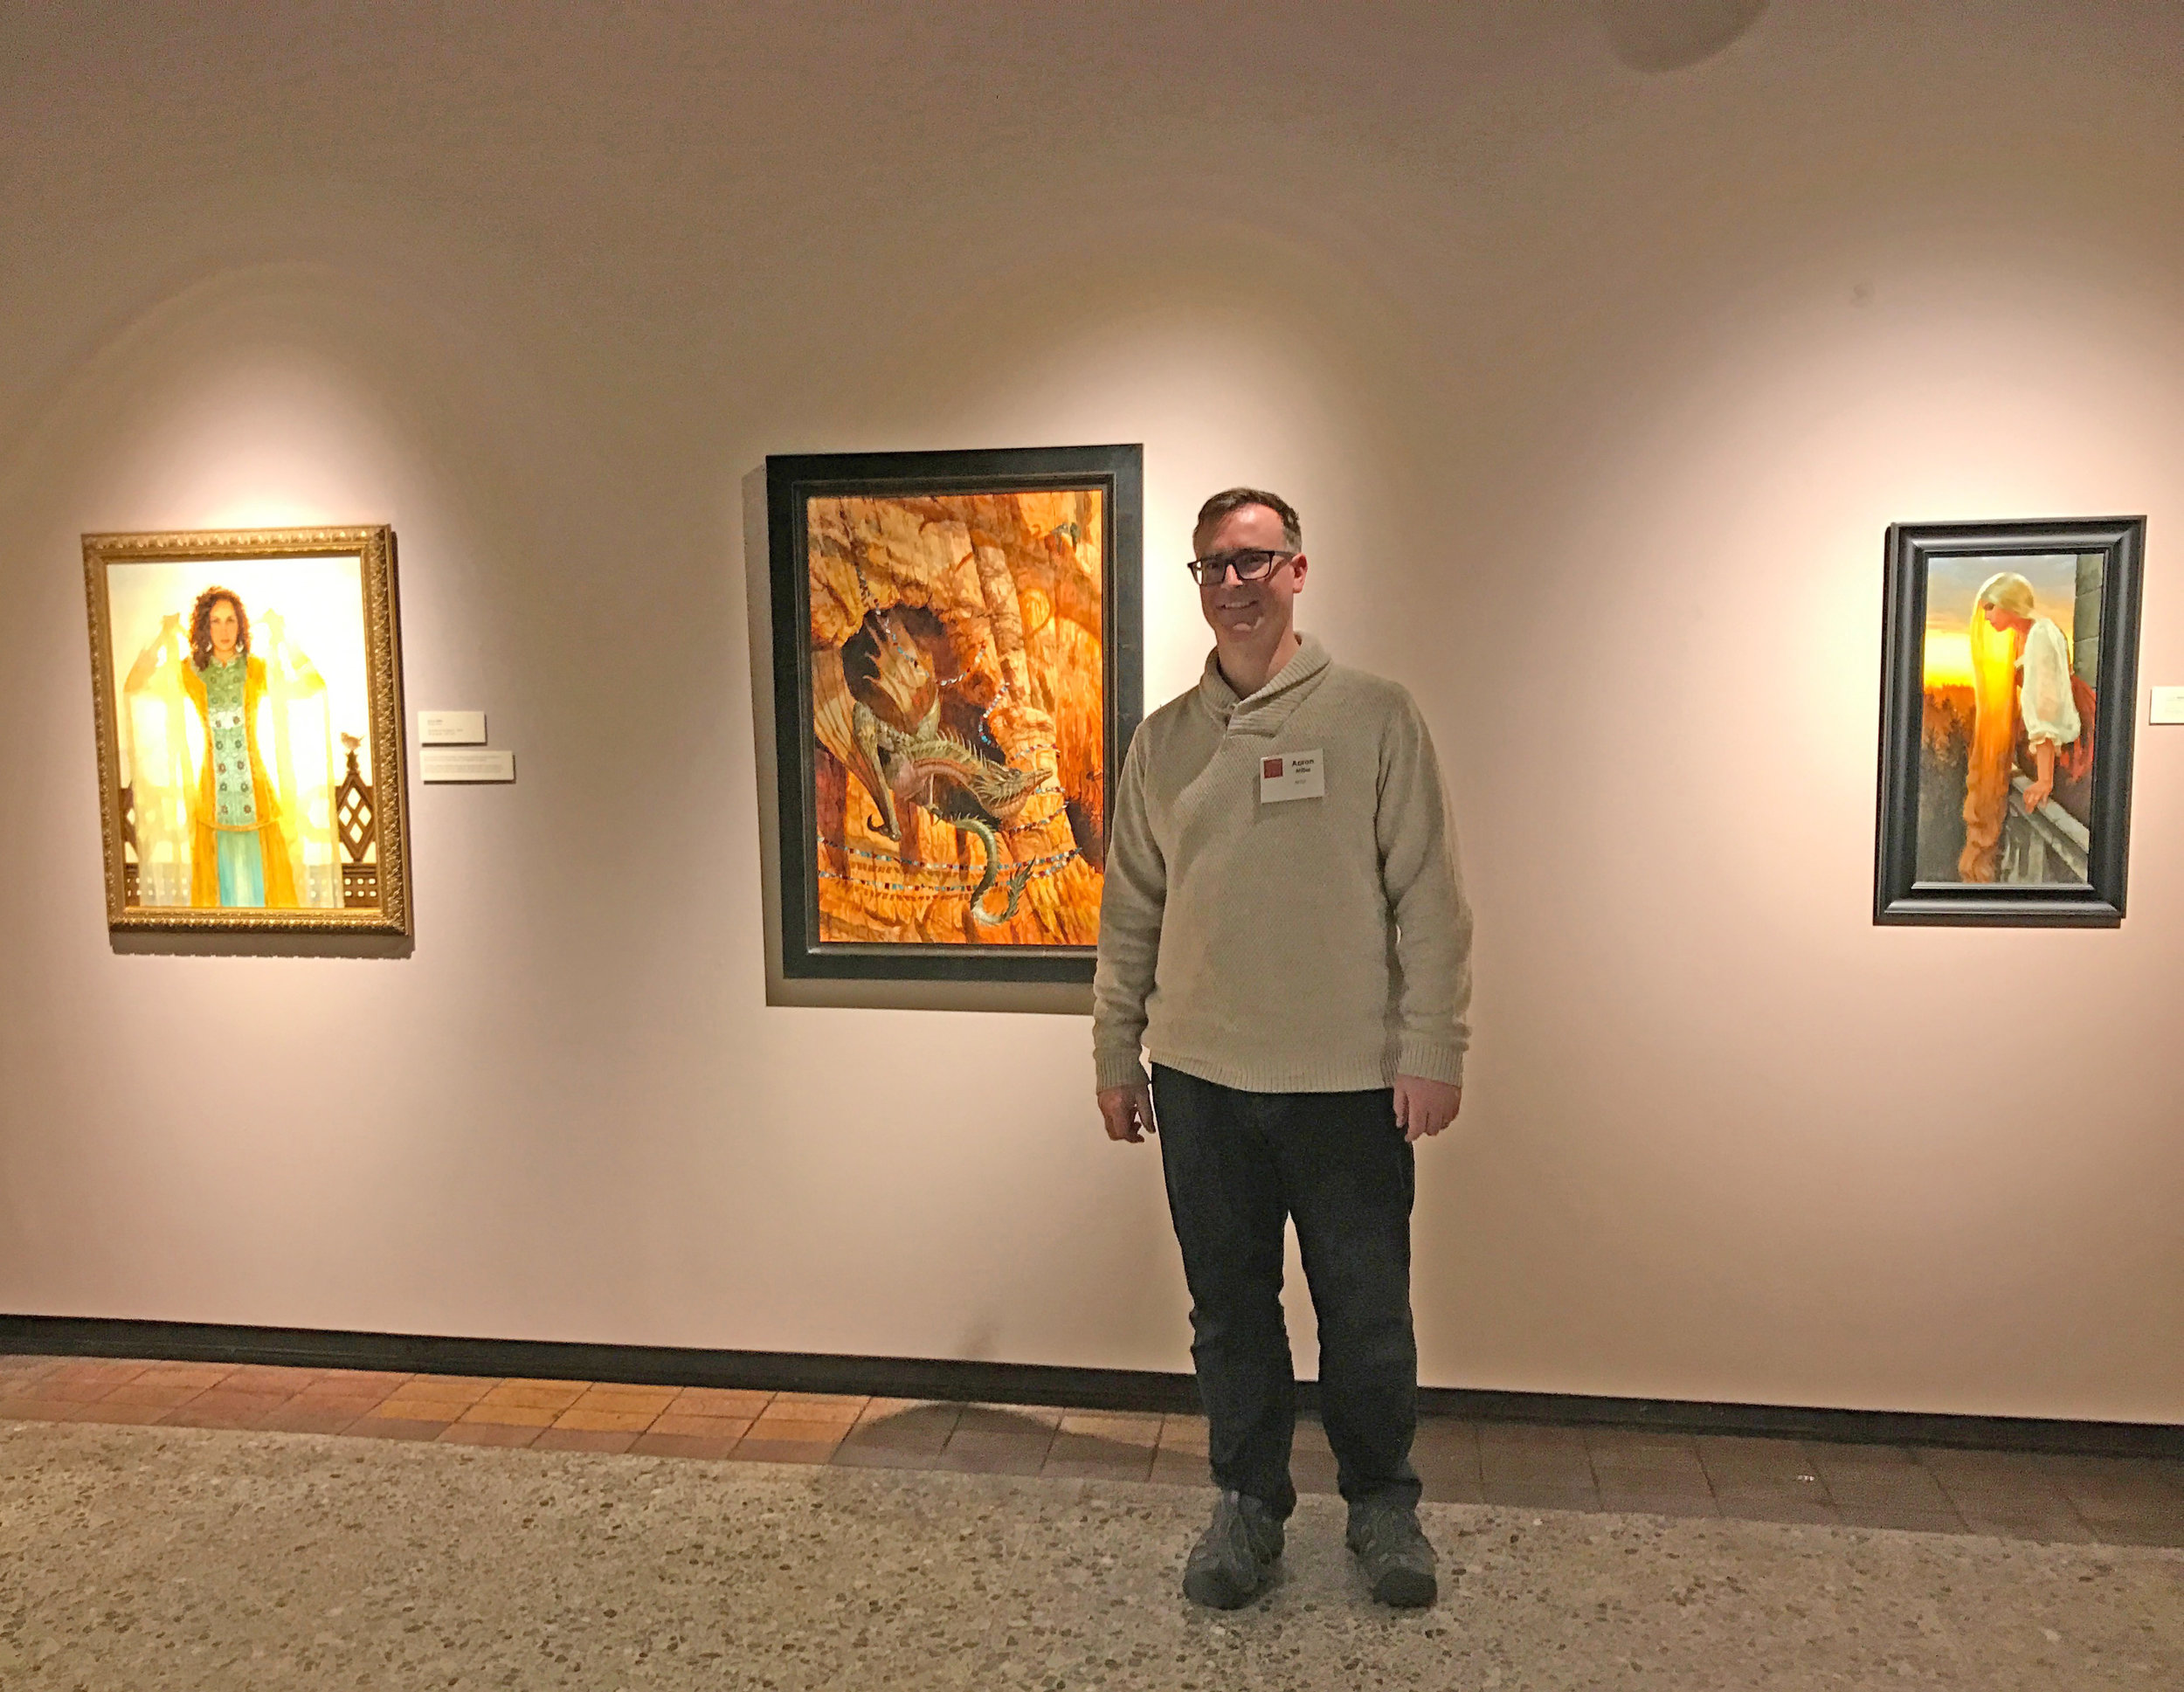 Three of my paintings hanging in the Dream Worlds Exhibit at the Canton Museum of Art